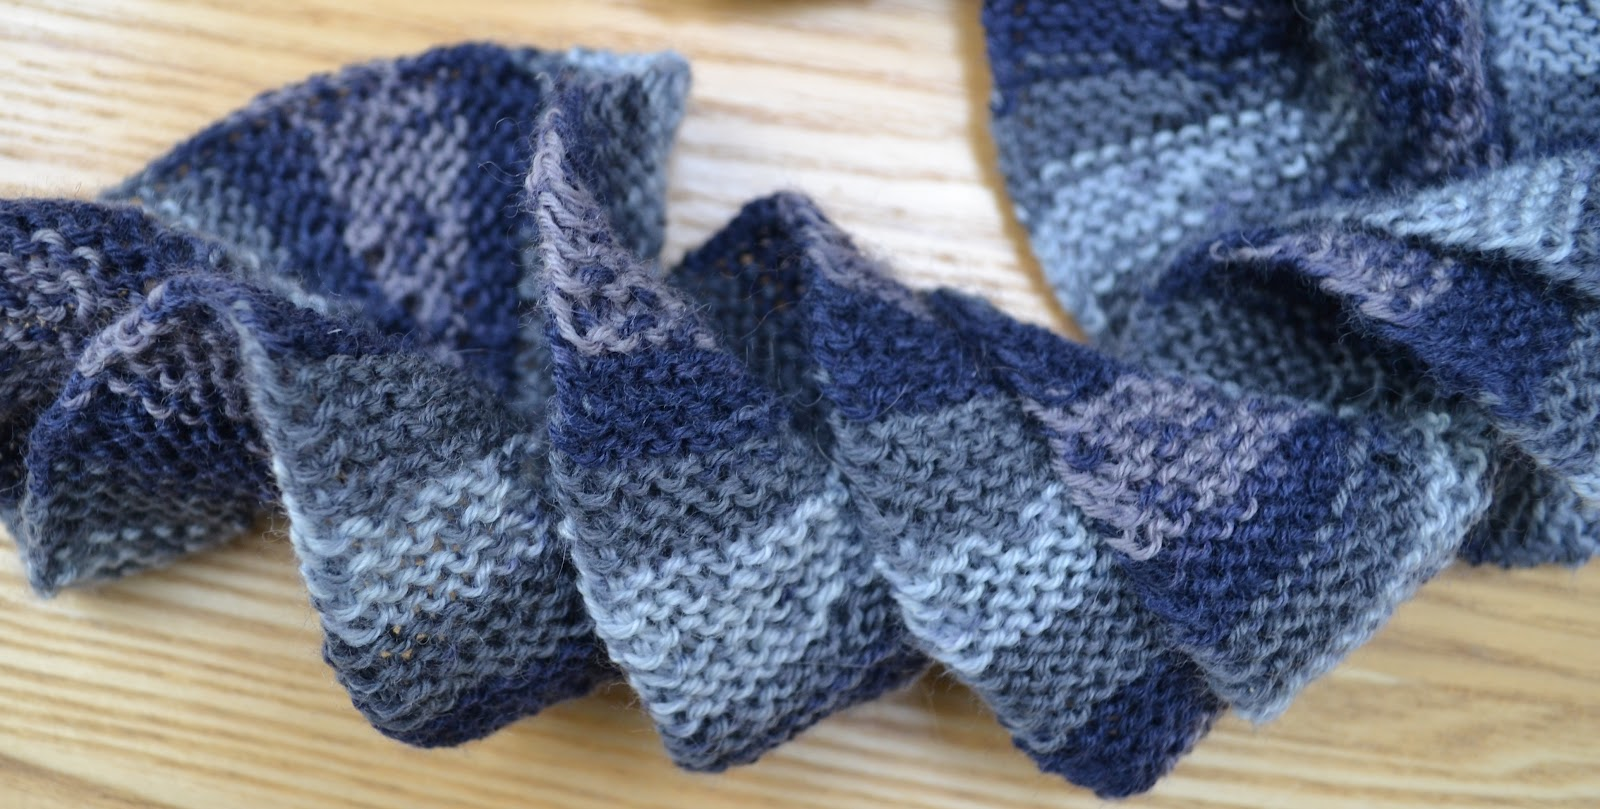 Potato Chip Knitted Scarf Pattern : Ginx Craft: The Potato Chip Scarf